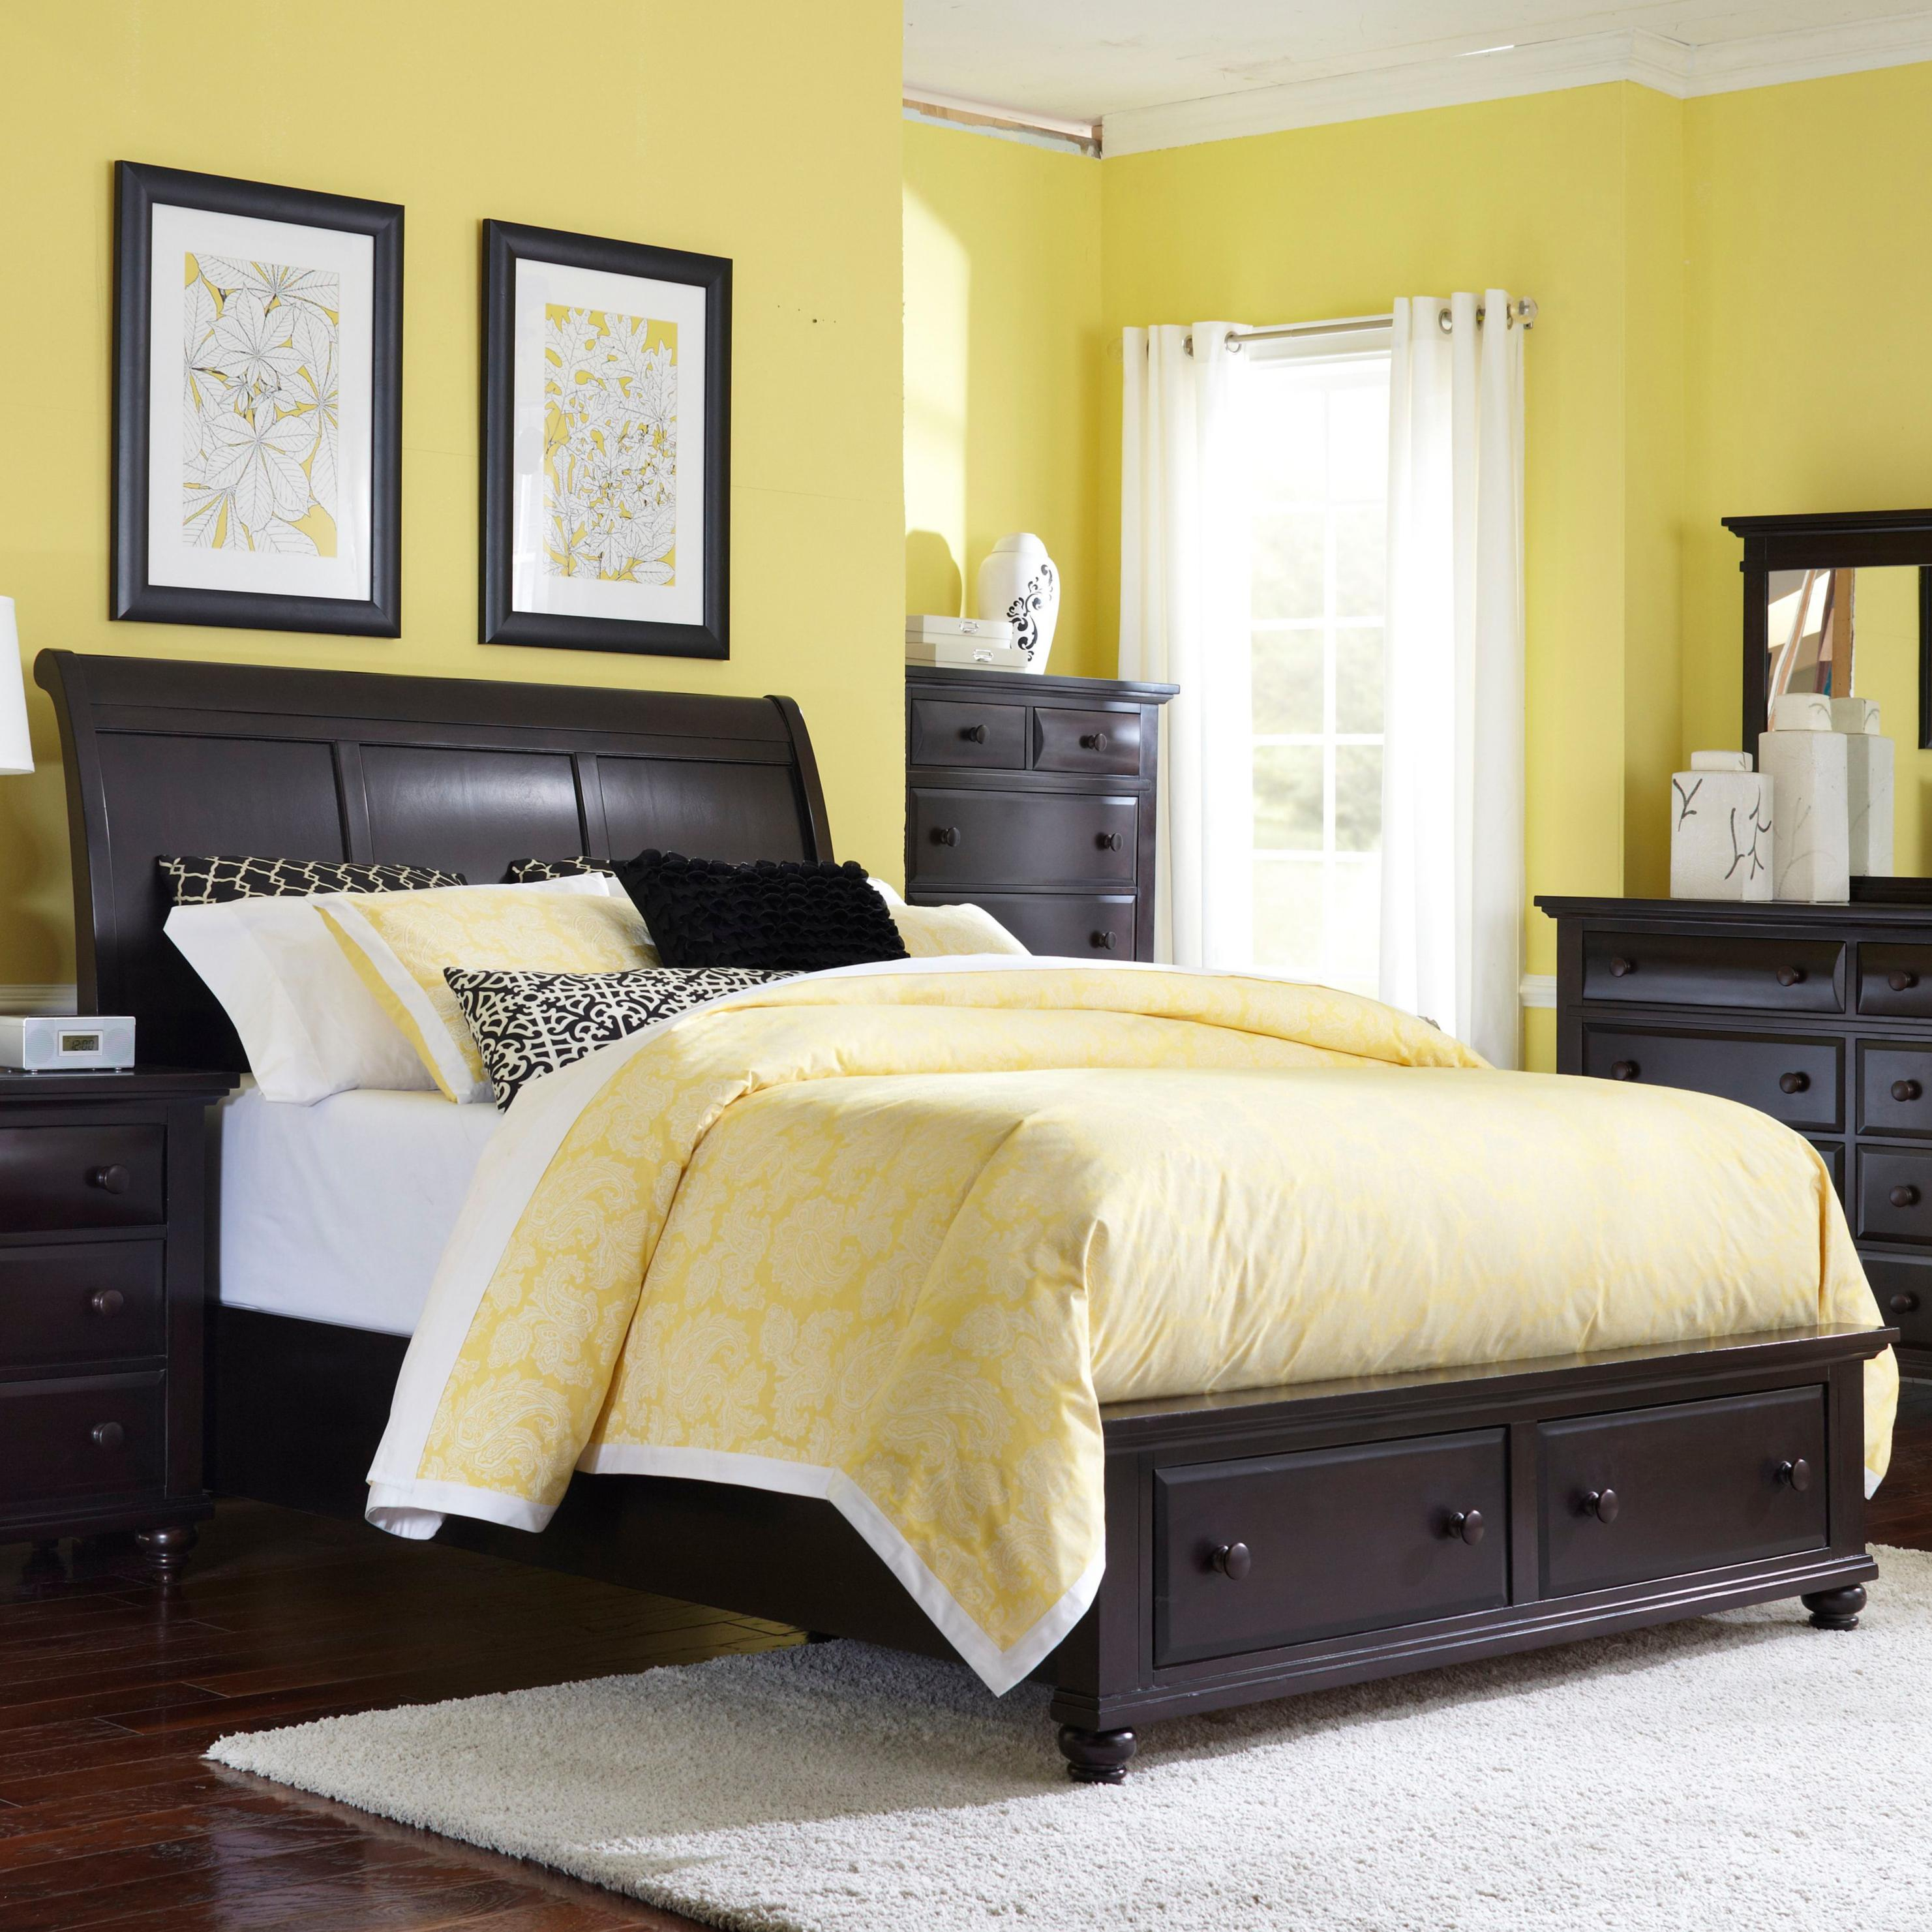 Broyhill Furniture Farnsworth King Sleigh Bed With Storage   Item Number:  4856 264+